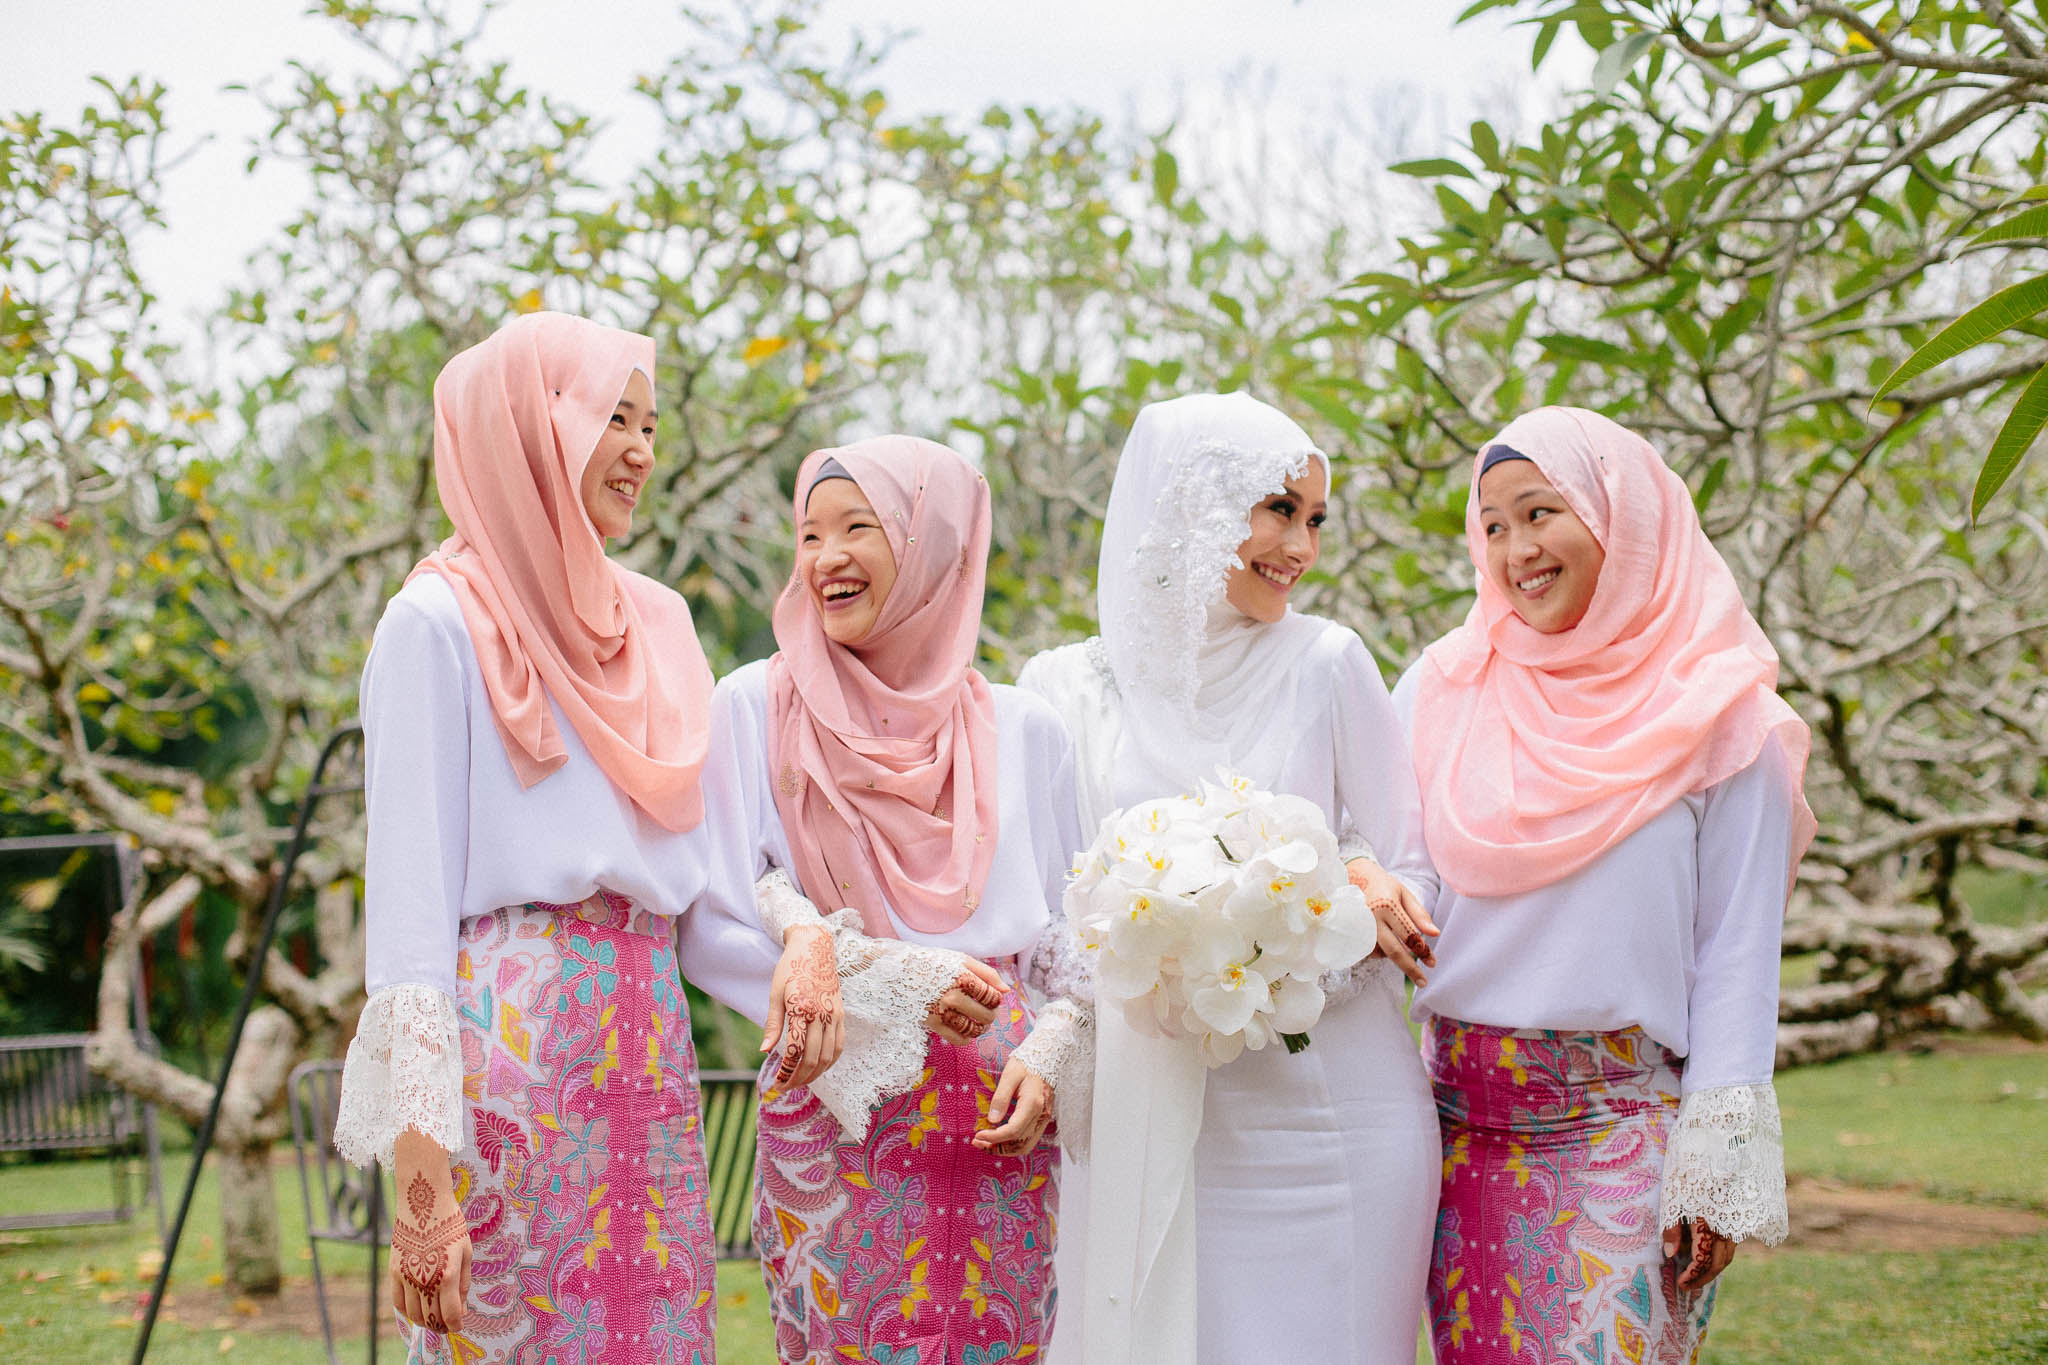 singapore-wedding-photographer-sarah-razif-64.jpg